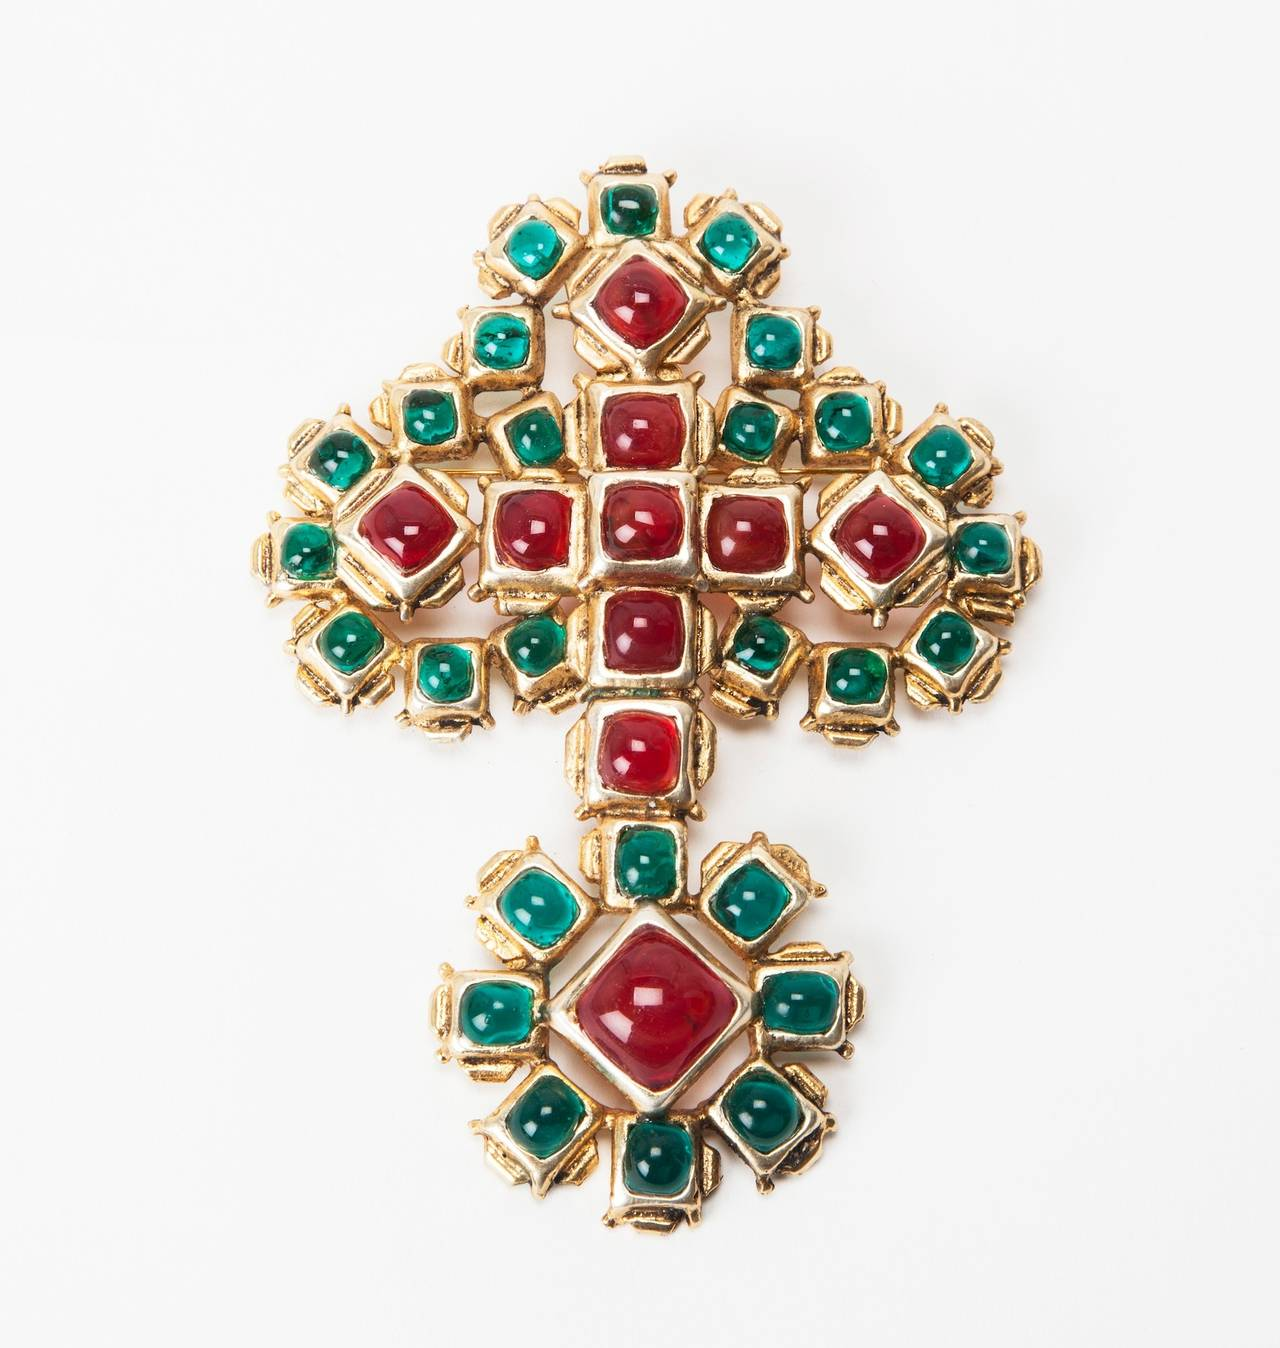 Massive Chanel Renaissance Cross Brooch/Pendant 2